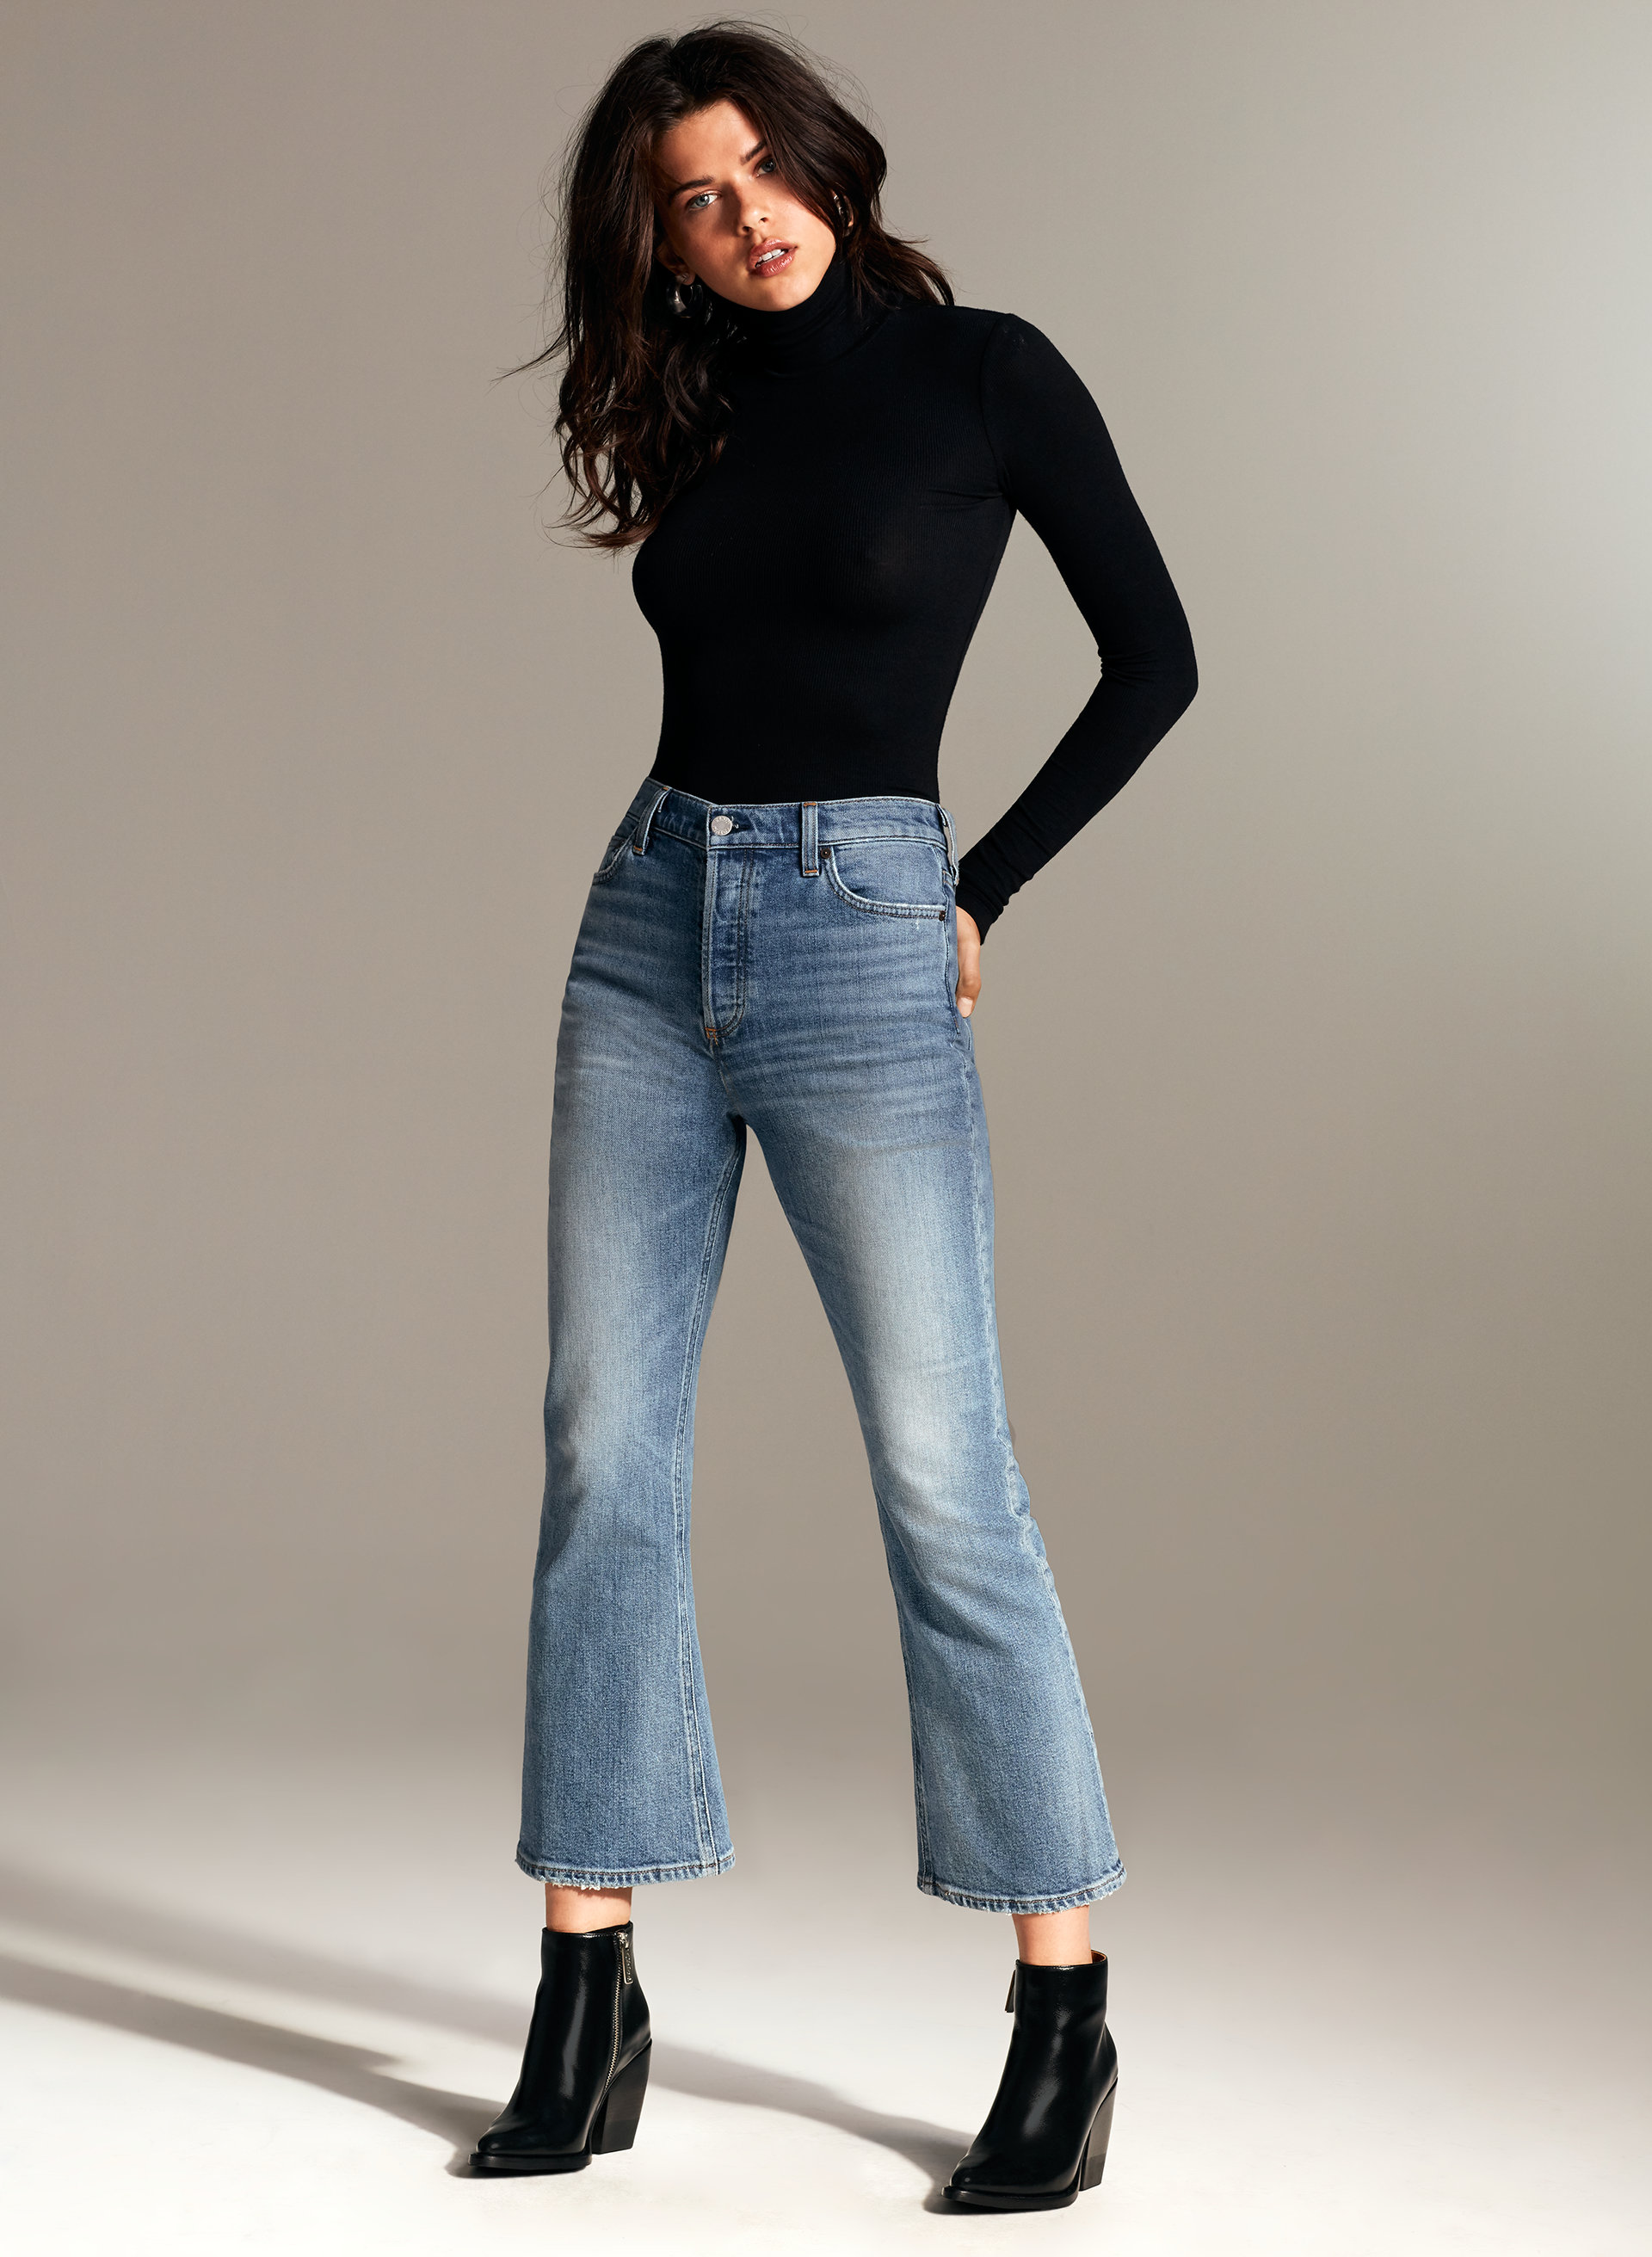 2b964f73f68b0 Best Cropped Flare Jeans - Fashion Trend 2018